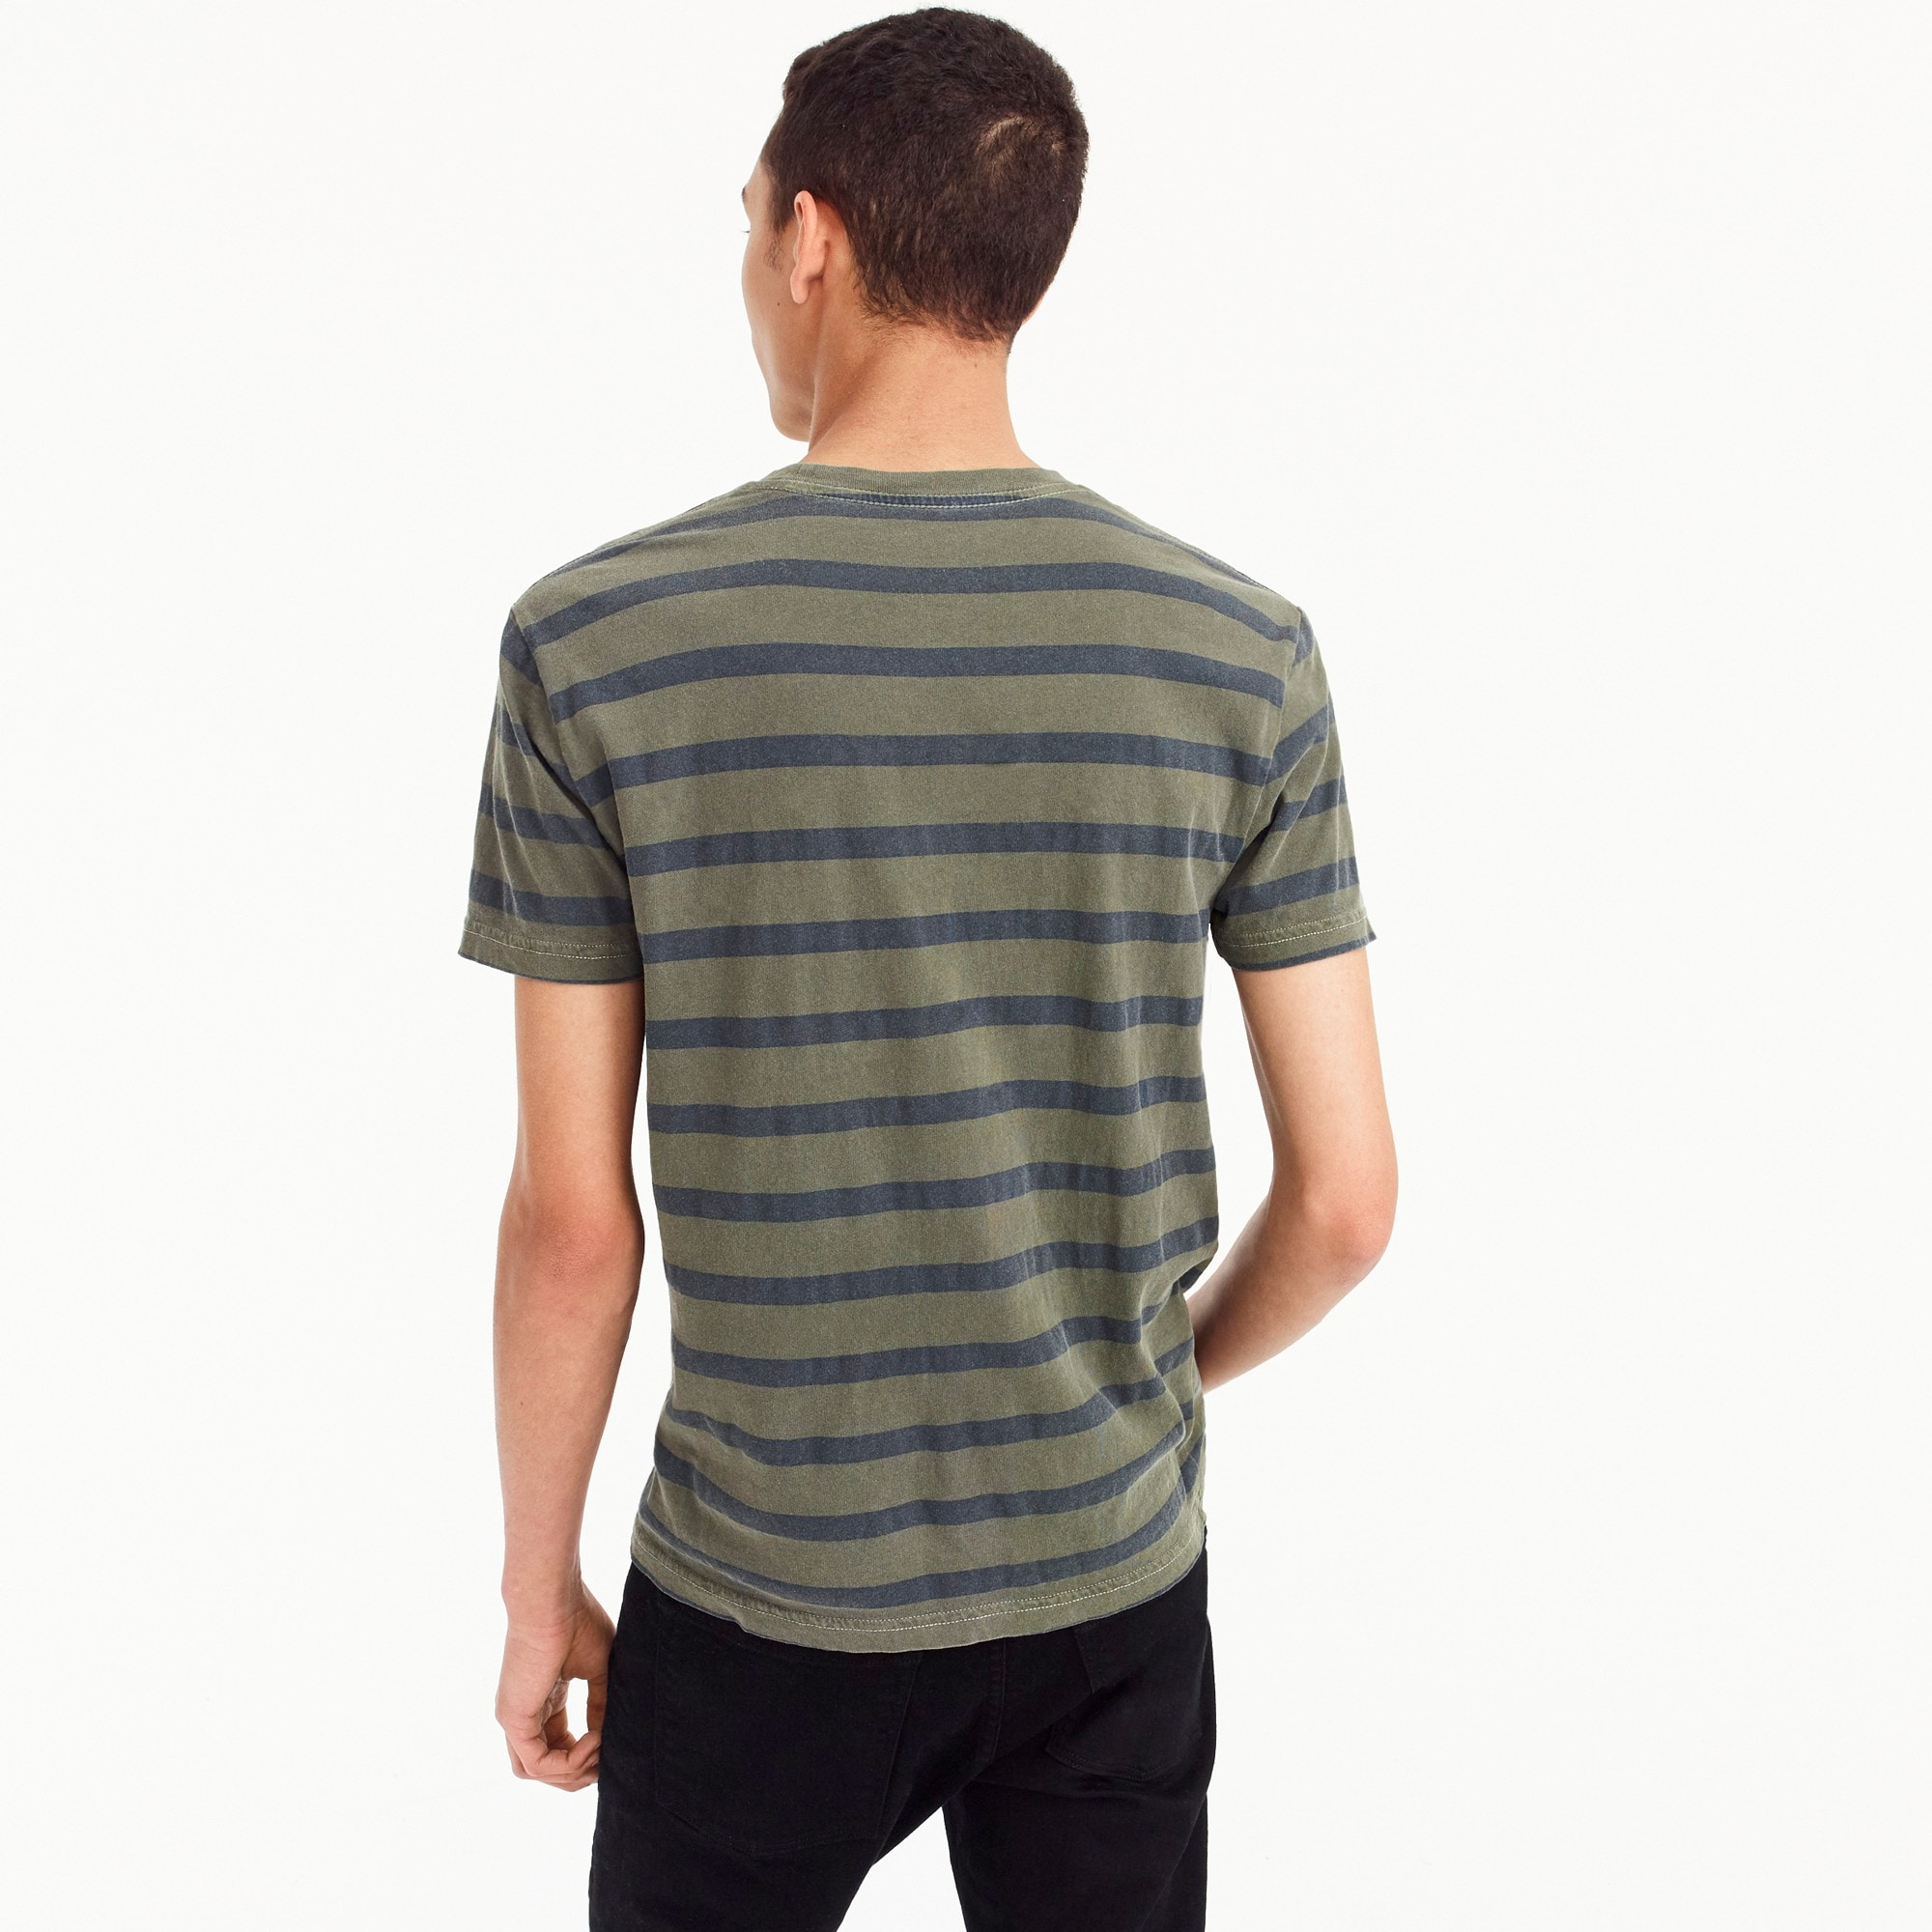 Image 3 for Garment-dyed T-shirt in harbor stripe